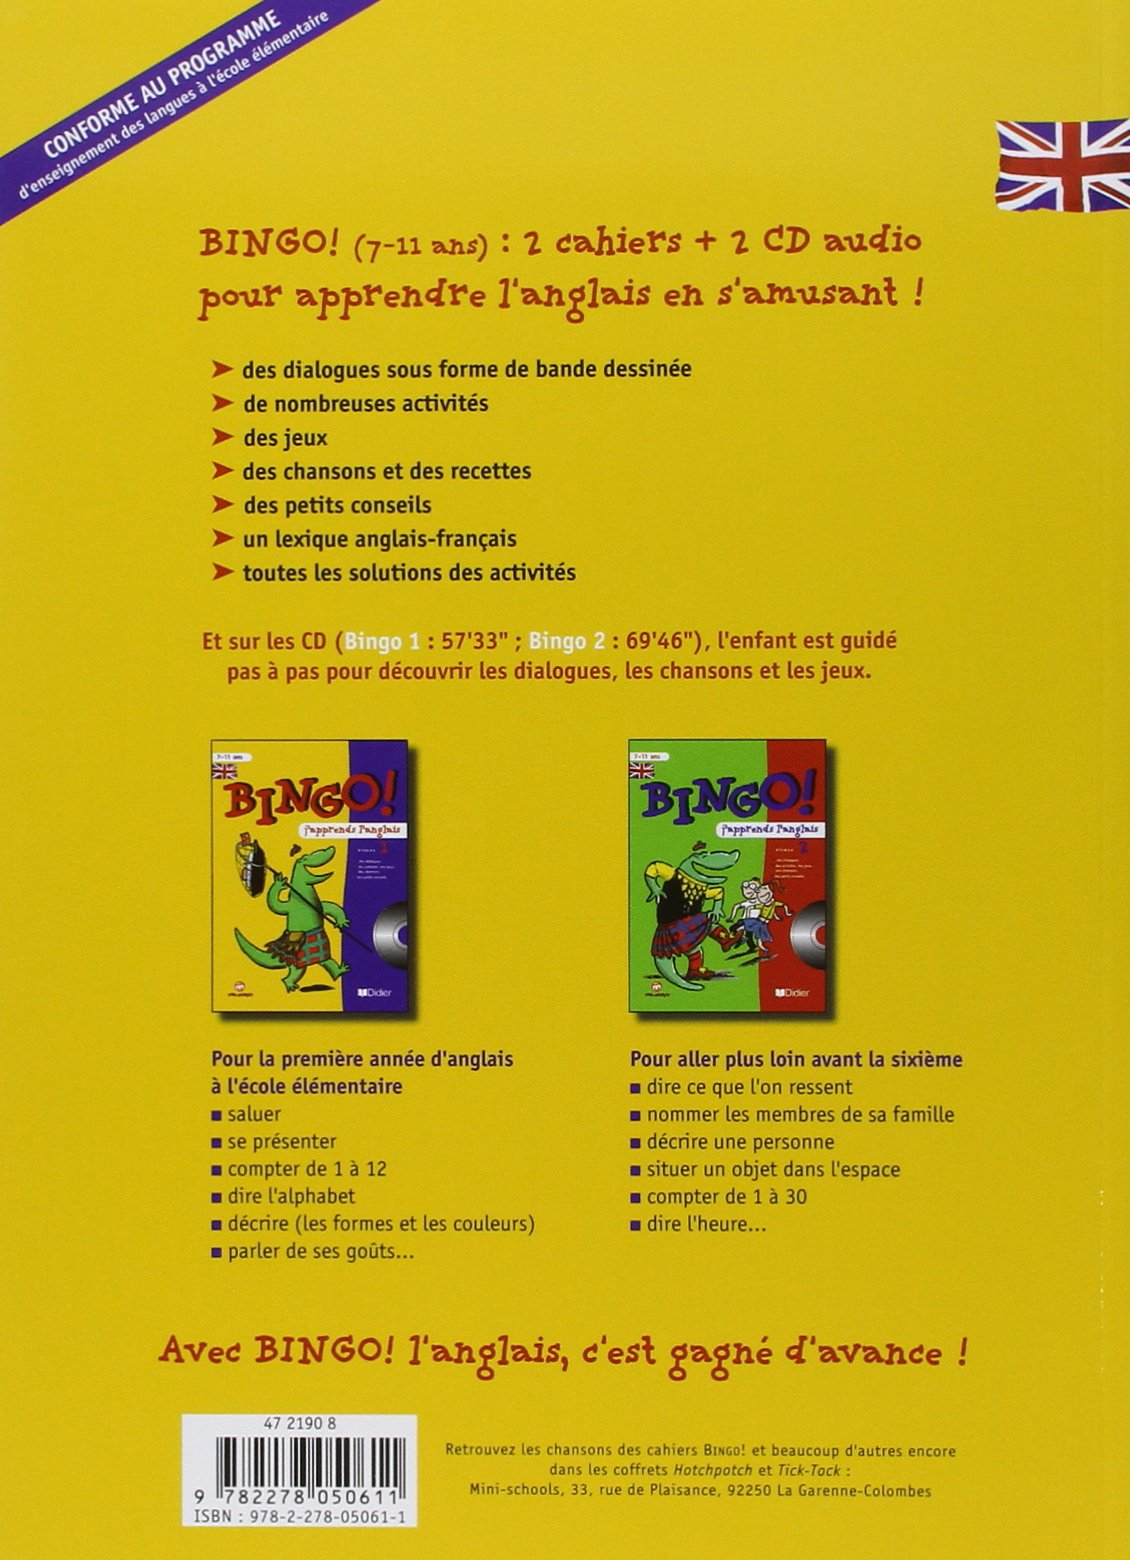 bingo japprends langlais niveau 2 cahier et cd audio